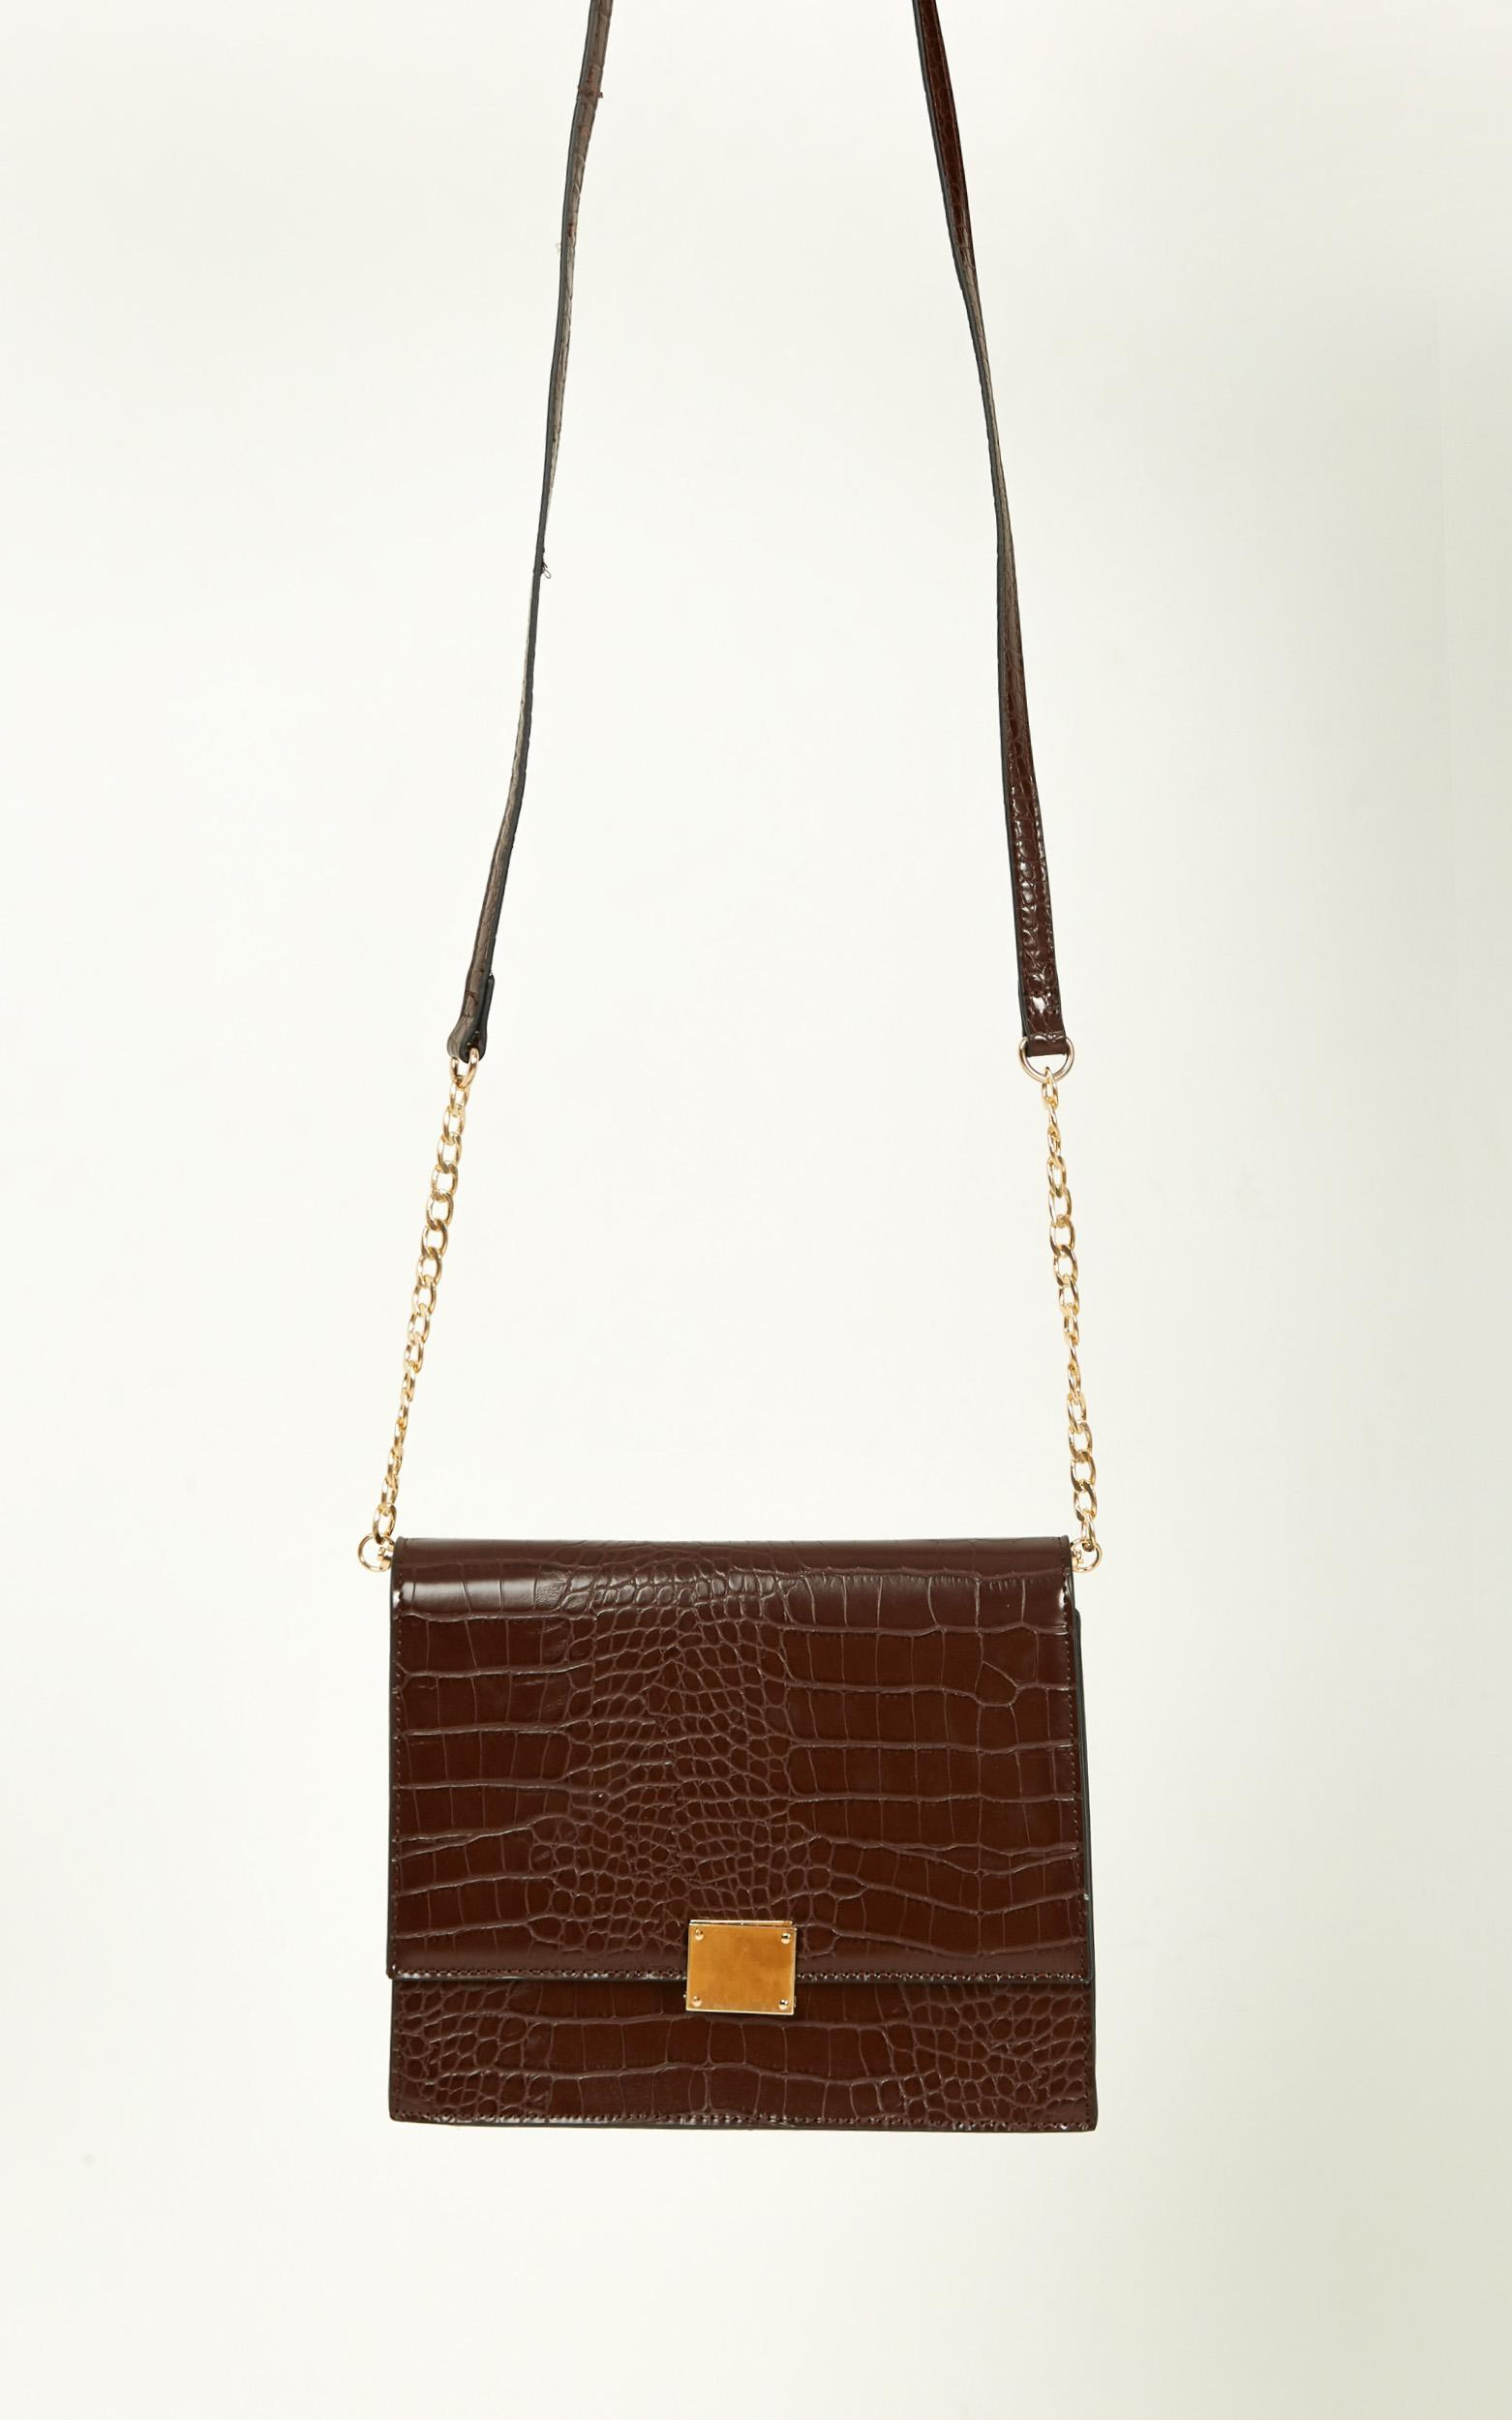 Fresh Eyes Bag In Chocolate And Gold, , hi-res image number null